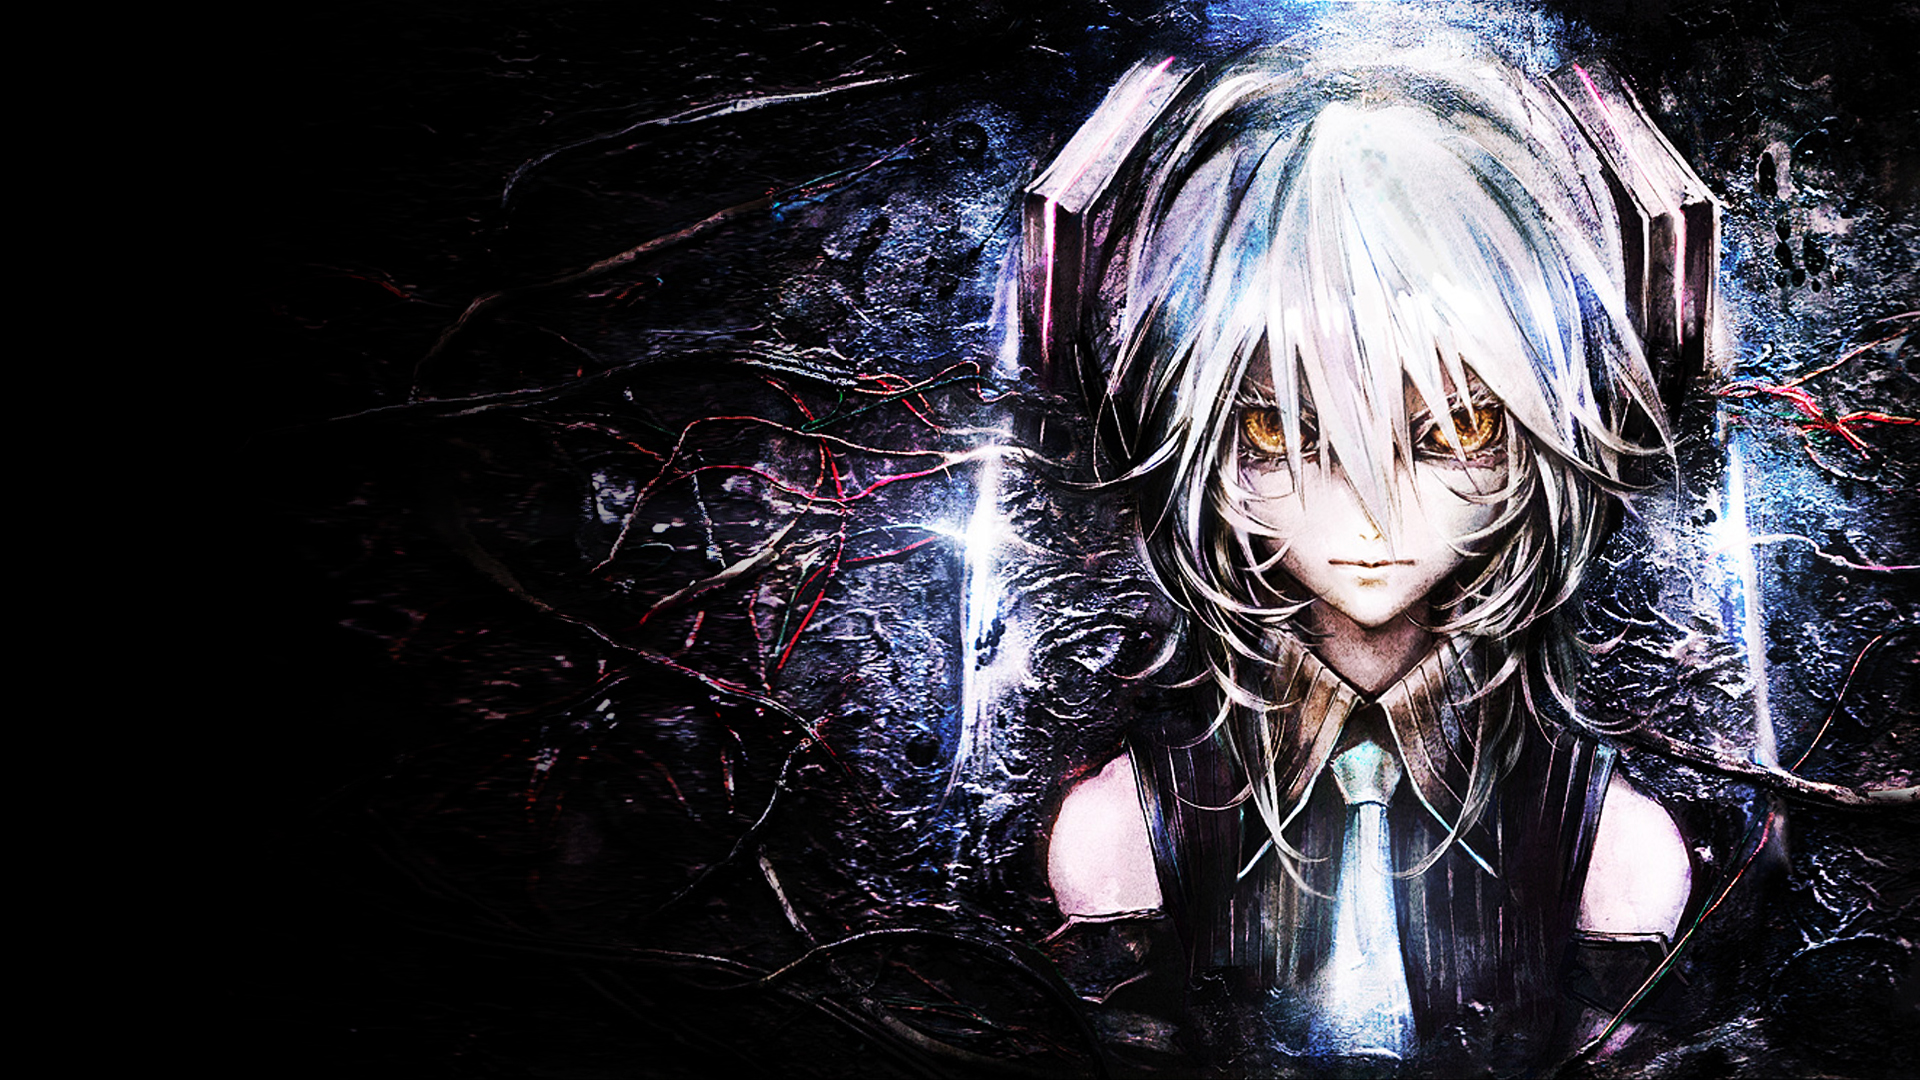 Cool Anime HD Desktop Image   HD Wallpapers 1920x1080